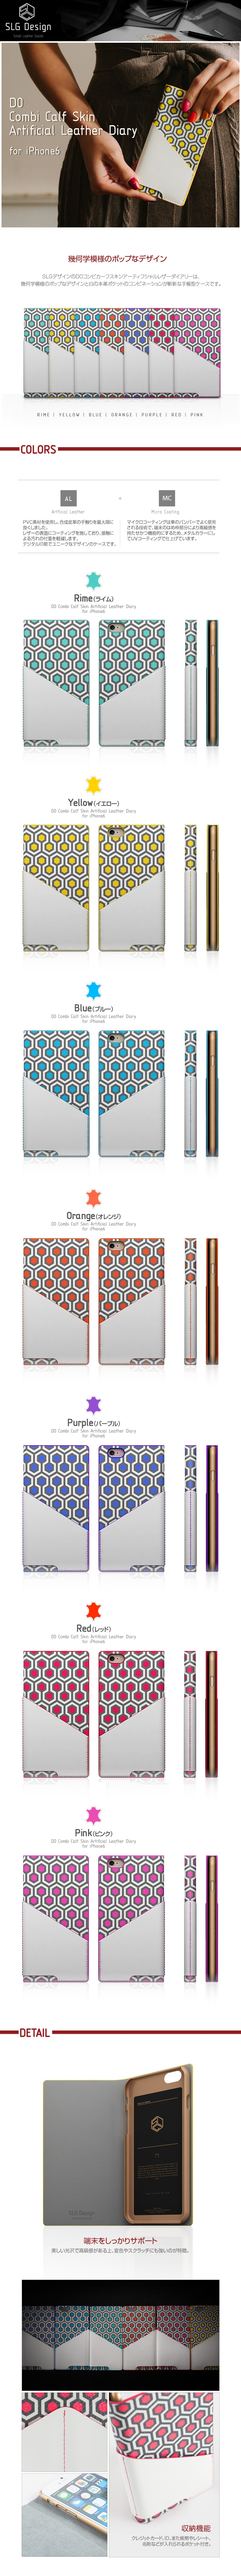 【iPhone6 ケース】 SLG Design D0 Combi Calf Skin Artificial Leather Diary